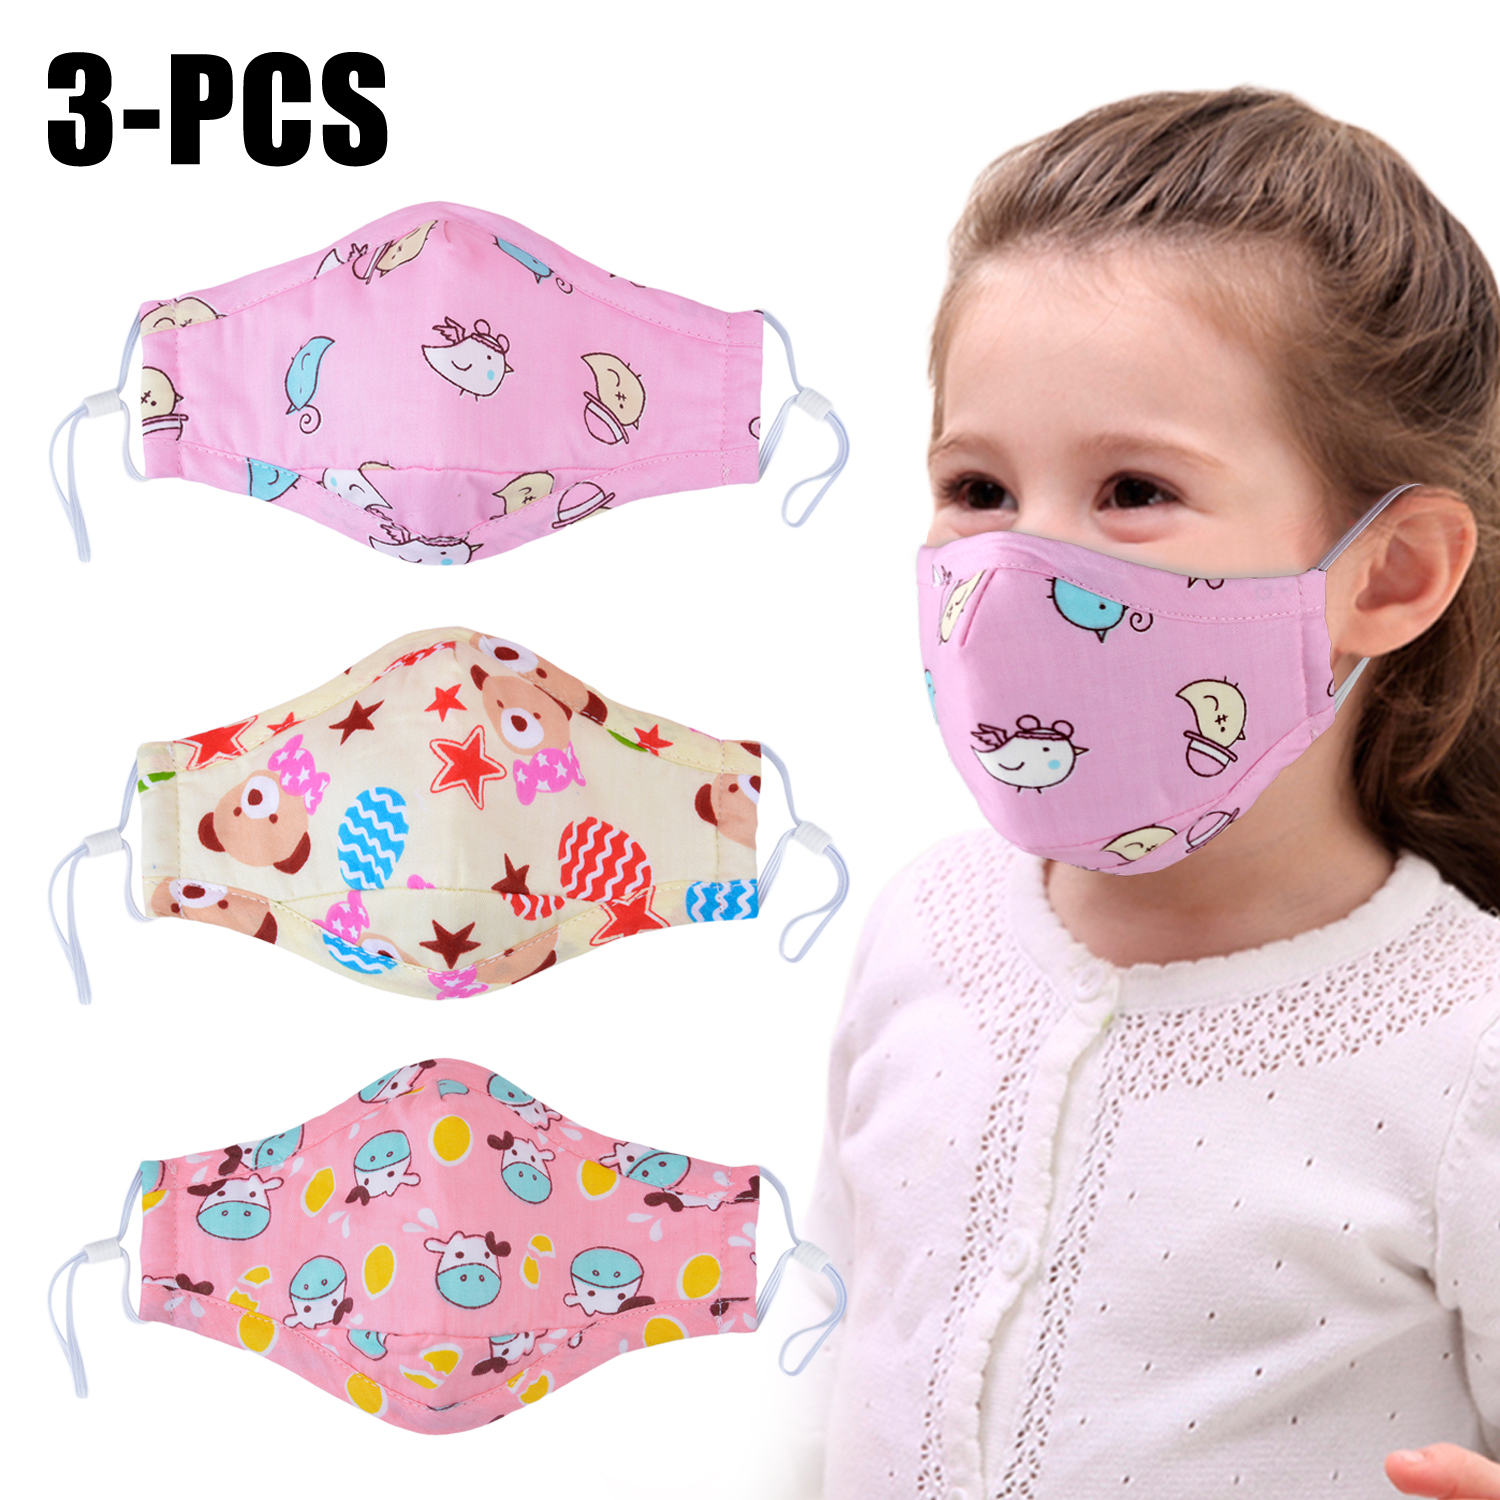 3pcs Cartoon 3-10 Year Old Kids Mask PM2.5 Anti Haze Cotton Mask Breath Anti-Dust Mouth Masks Face Masks Dropshipping